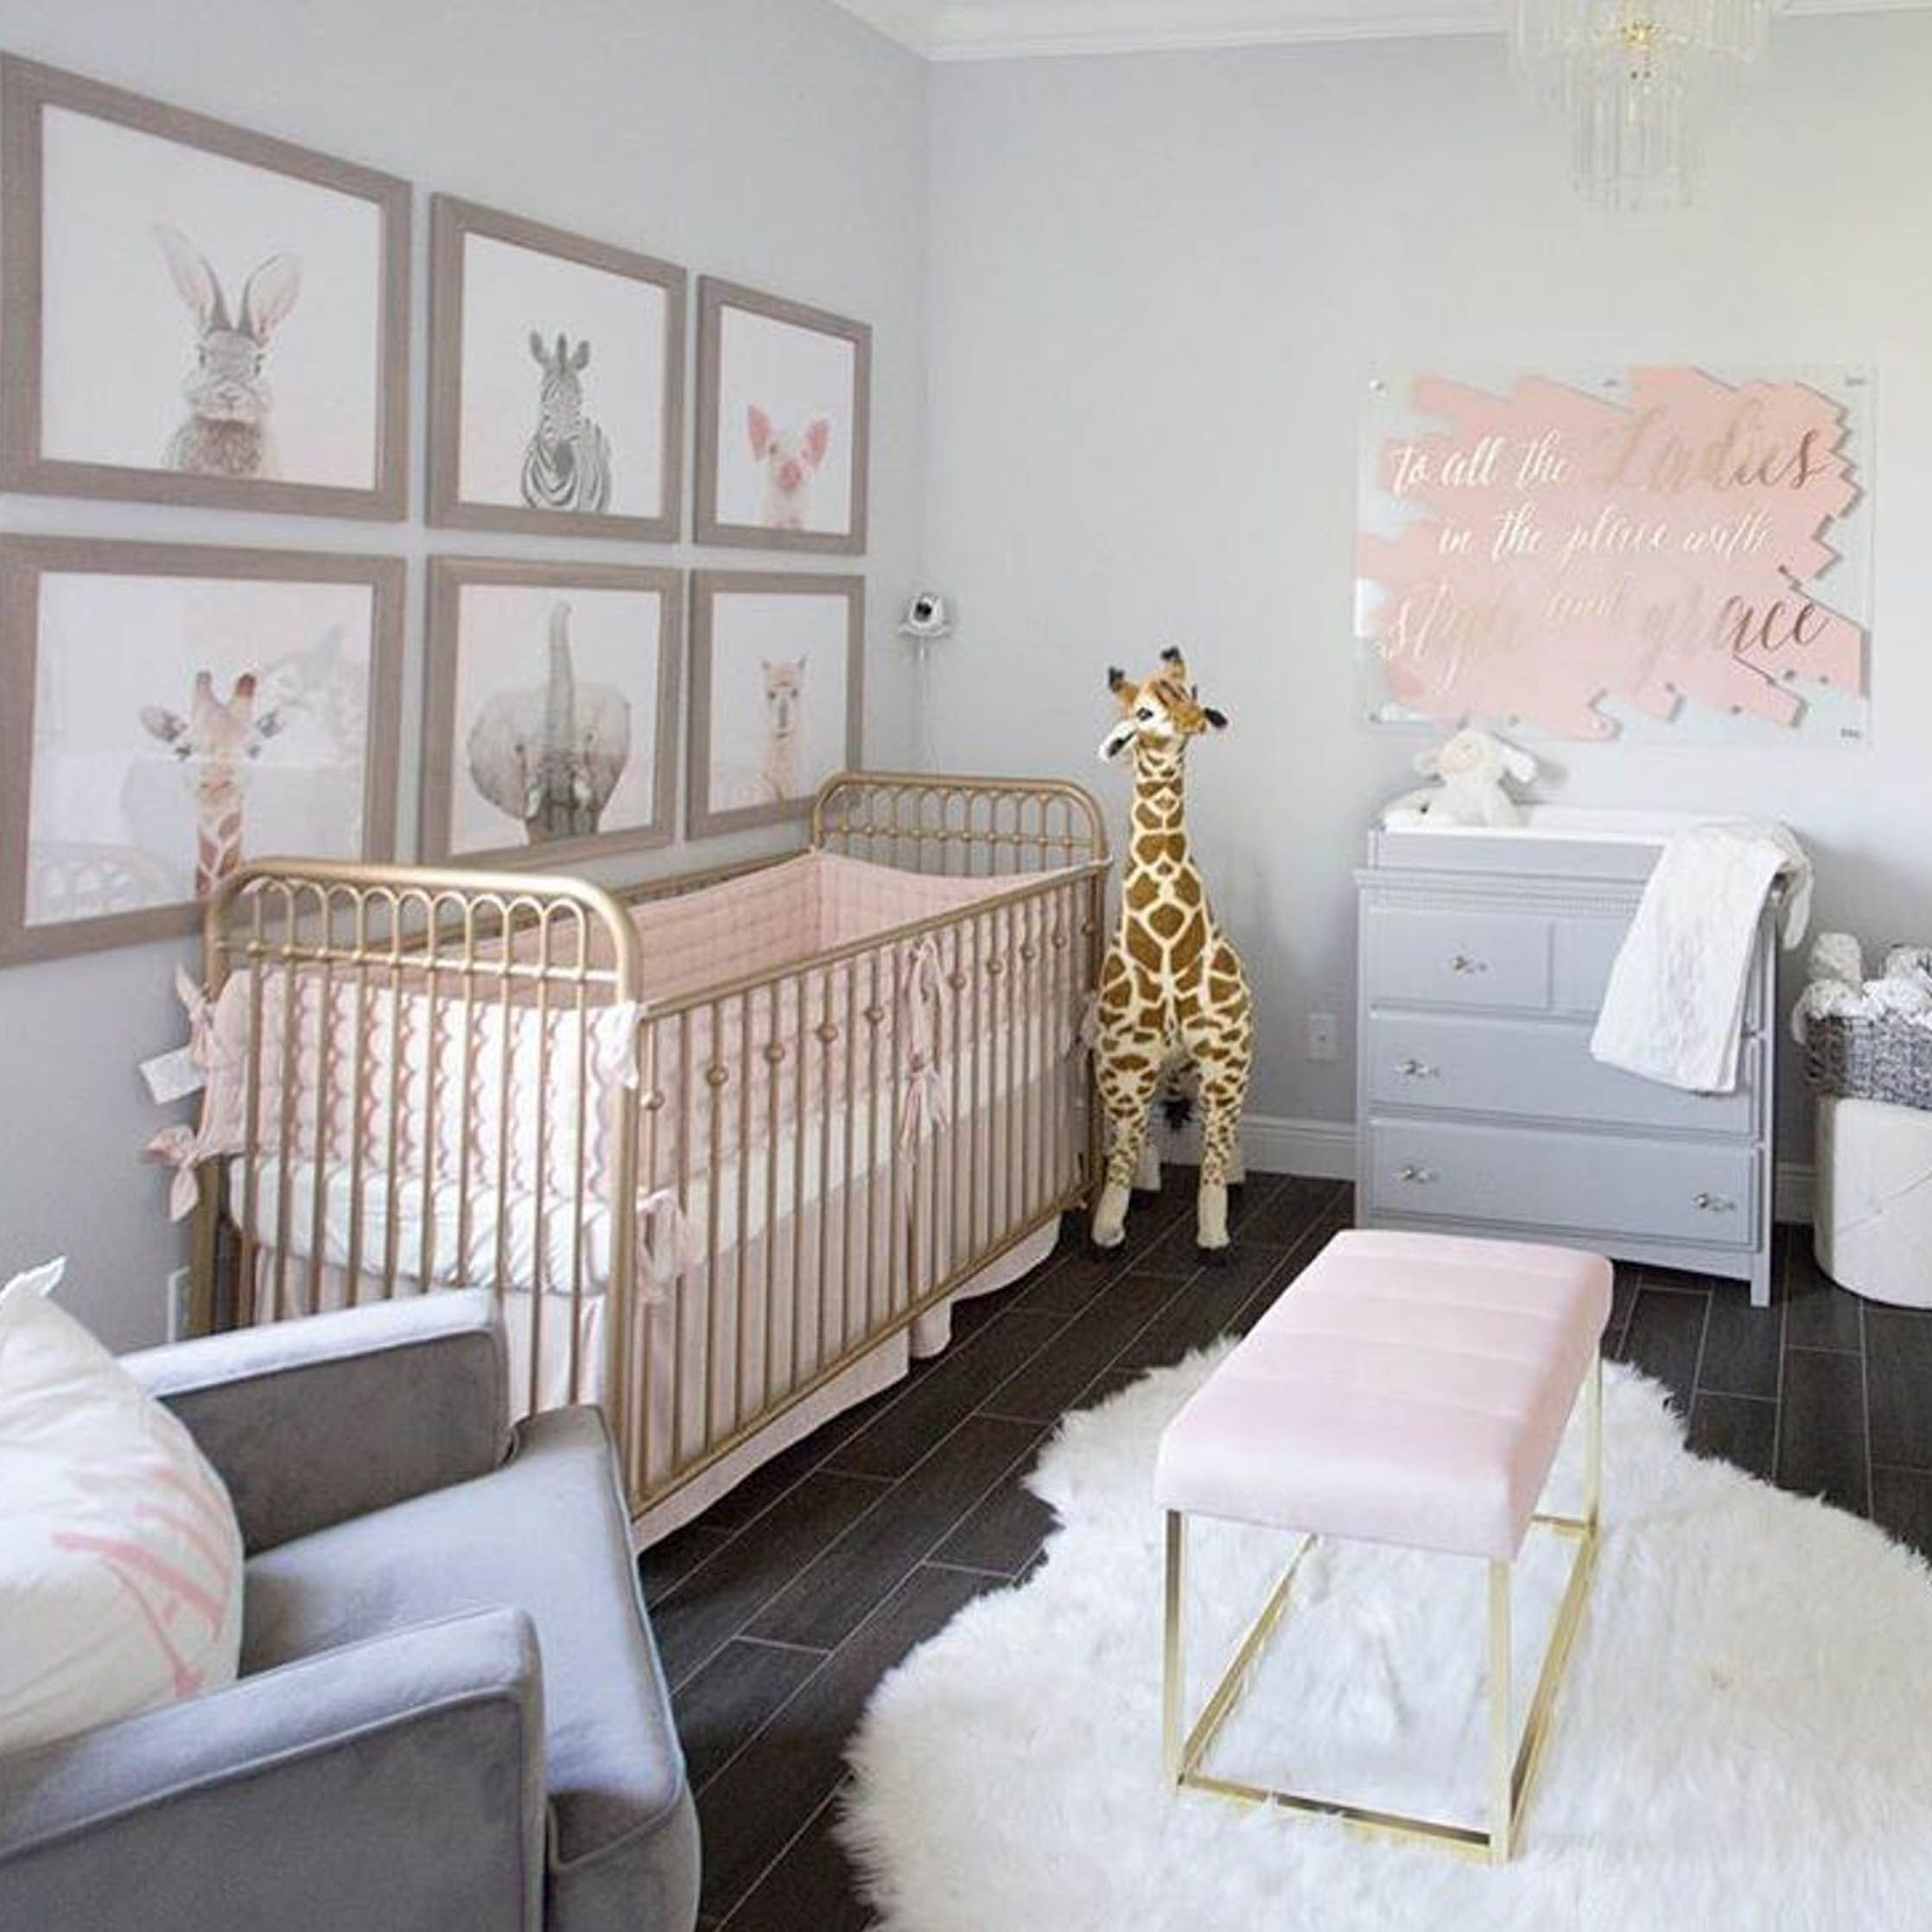 Baby Room Ideas Nursery Themes And Decor: Here's What's Trending In The Nursery